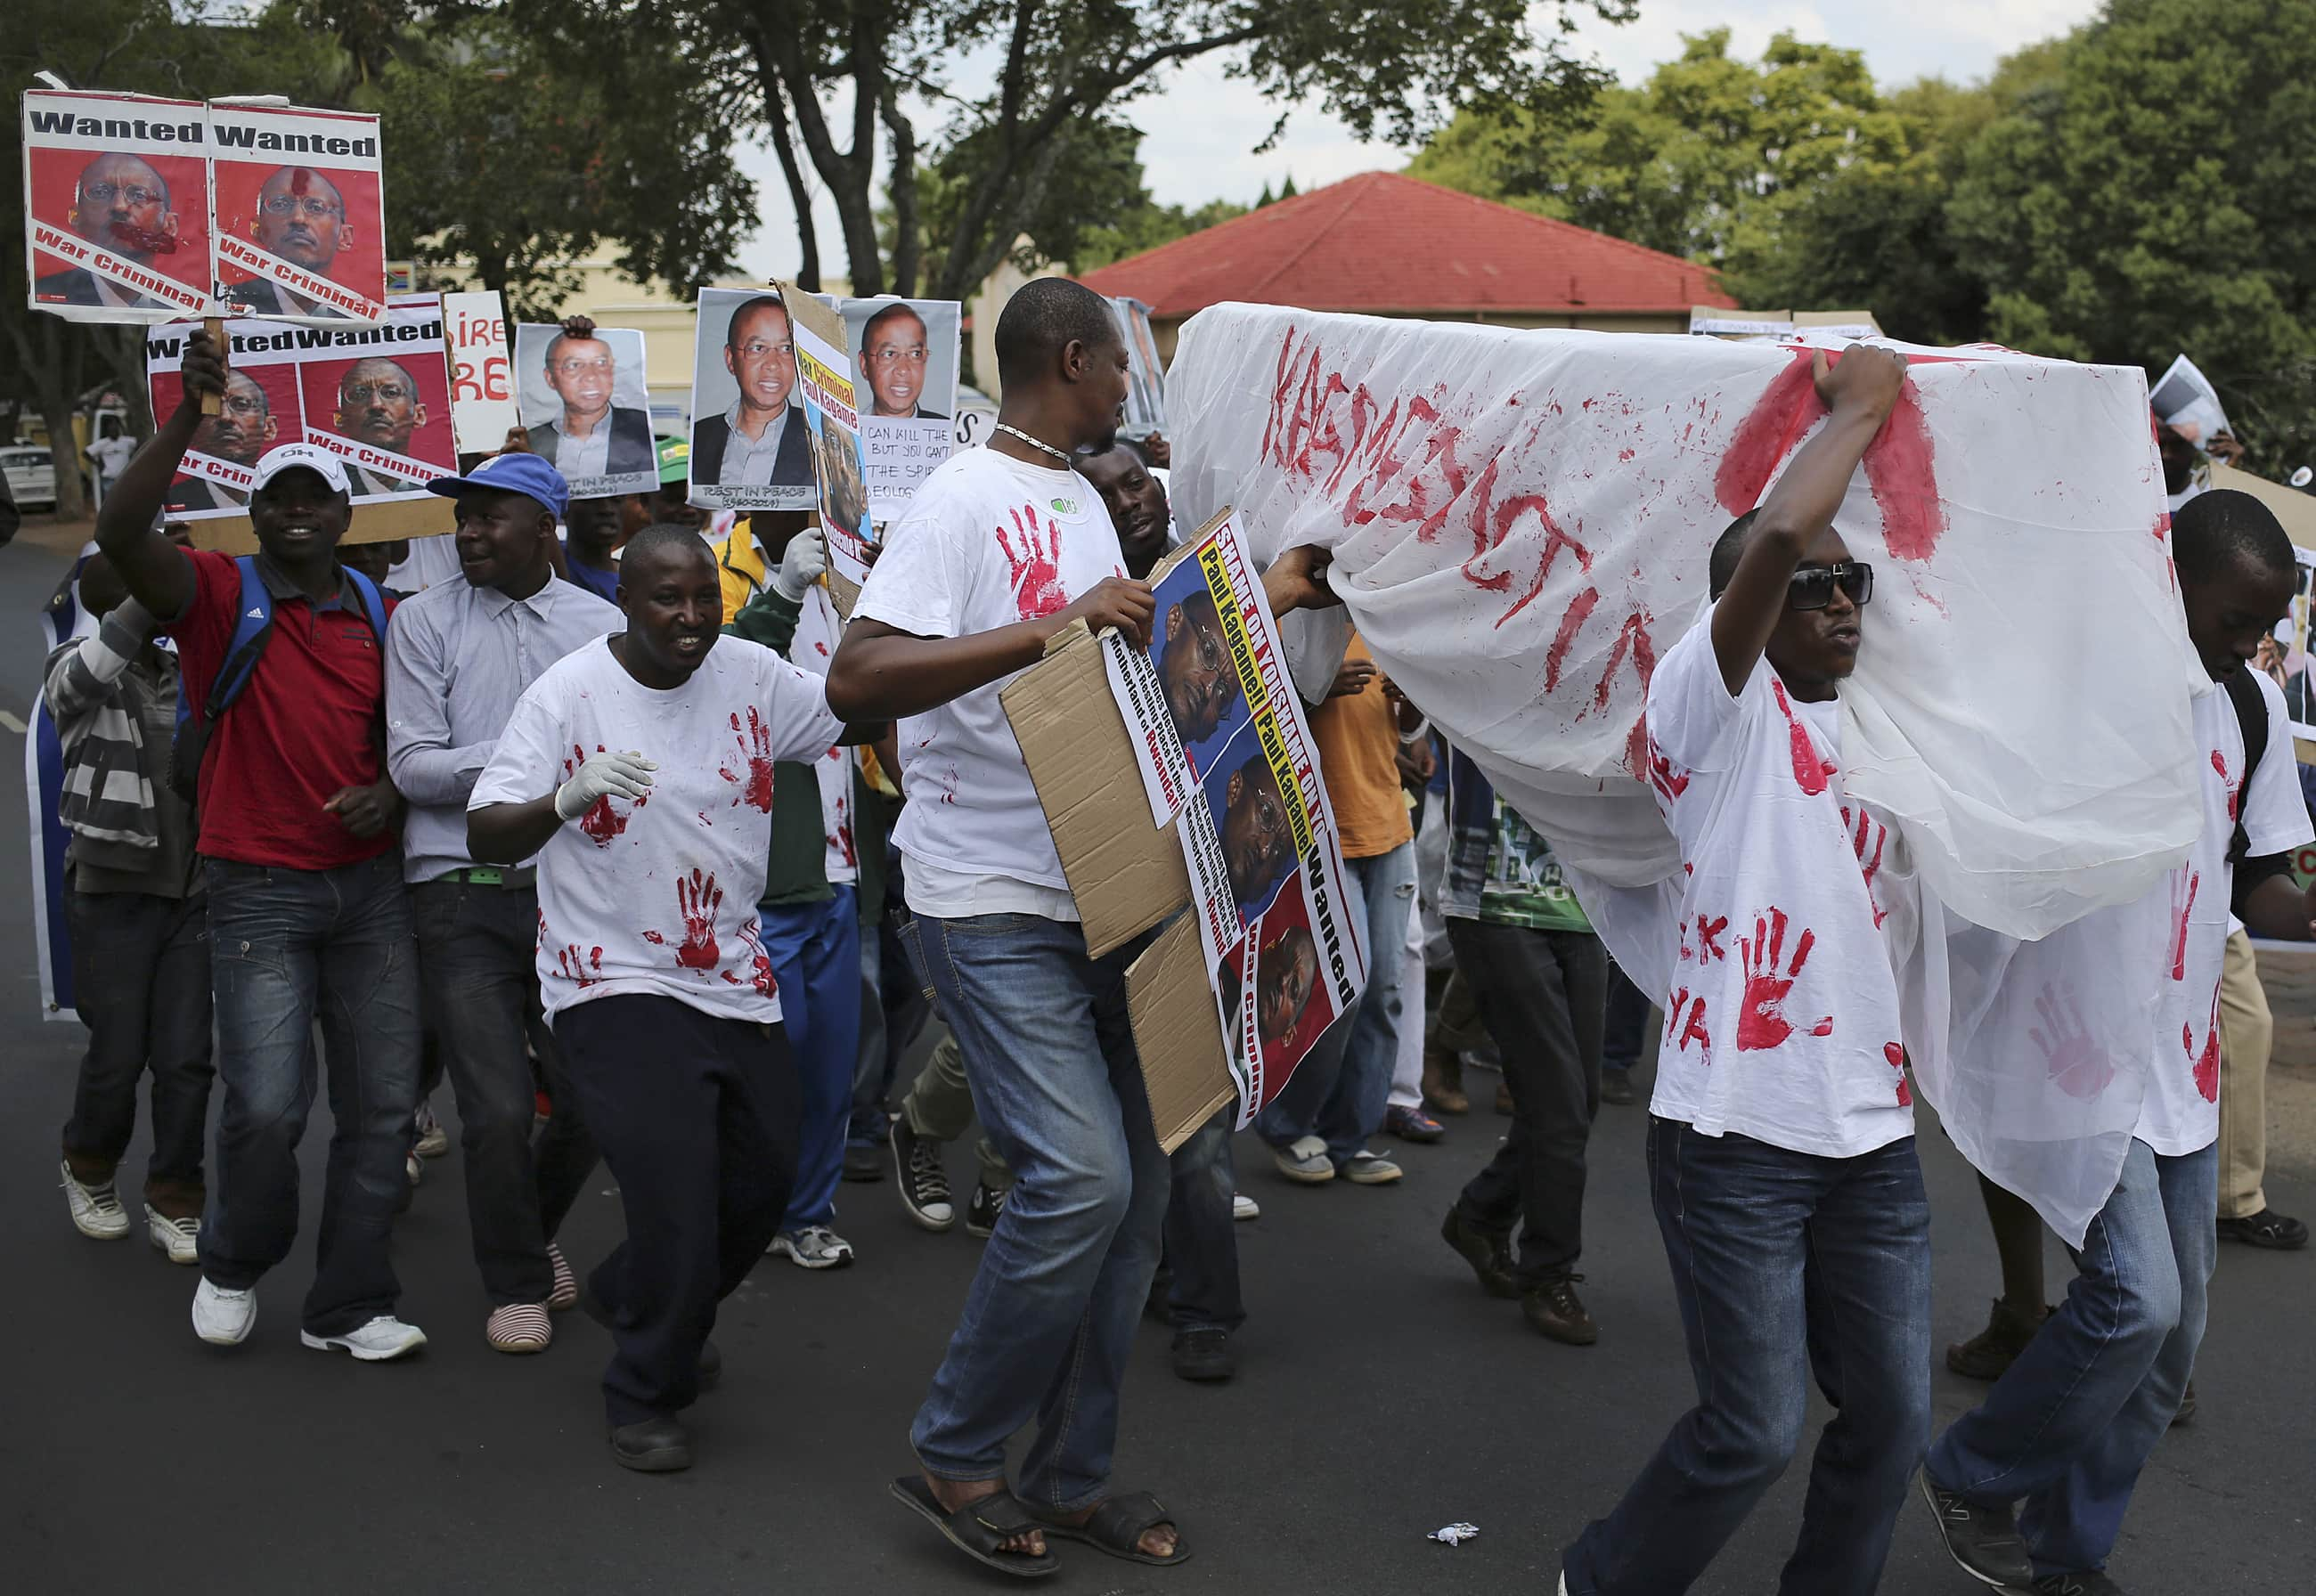 Supporters of the Rwanda National Congress, an opposition party that exiled former Rwandan intelligence chief Patrick Karegeya helped formed in 2011, carry a makeshift coffin as they protest outside the Rwandan embassy in Pretoria after Karegeya was found murdered in a Johannesburg hotel room, 9 January 2014., REUTERS/Siphiwe Sibeko